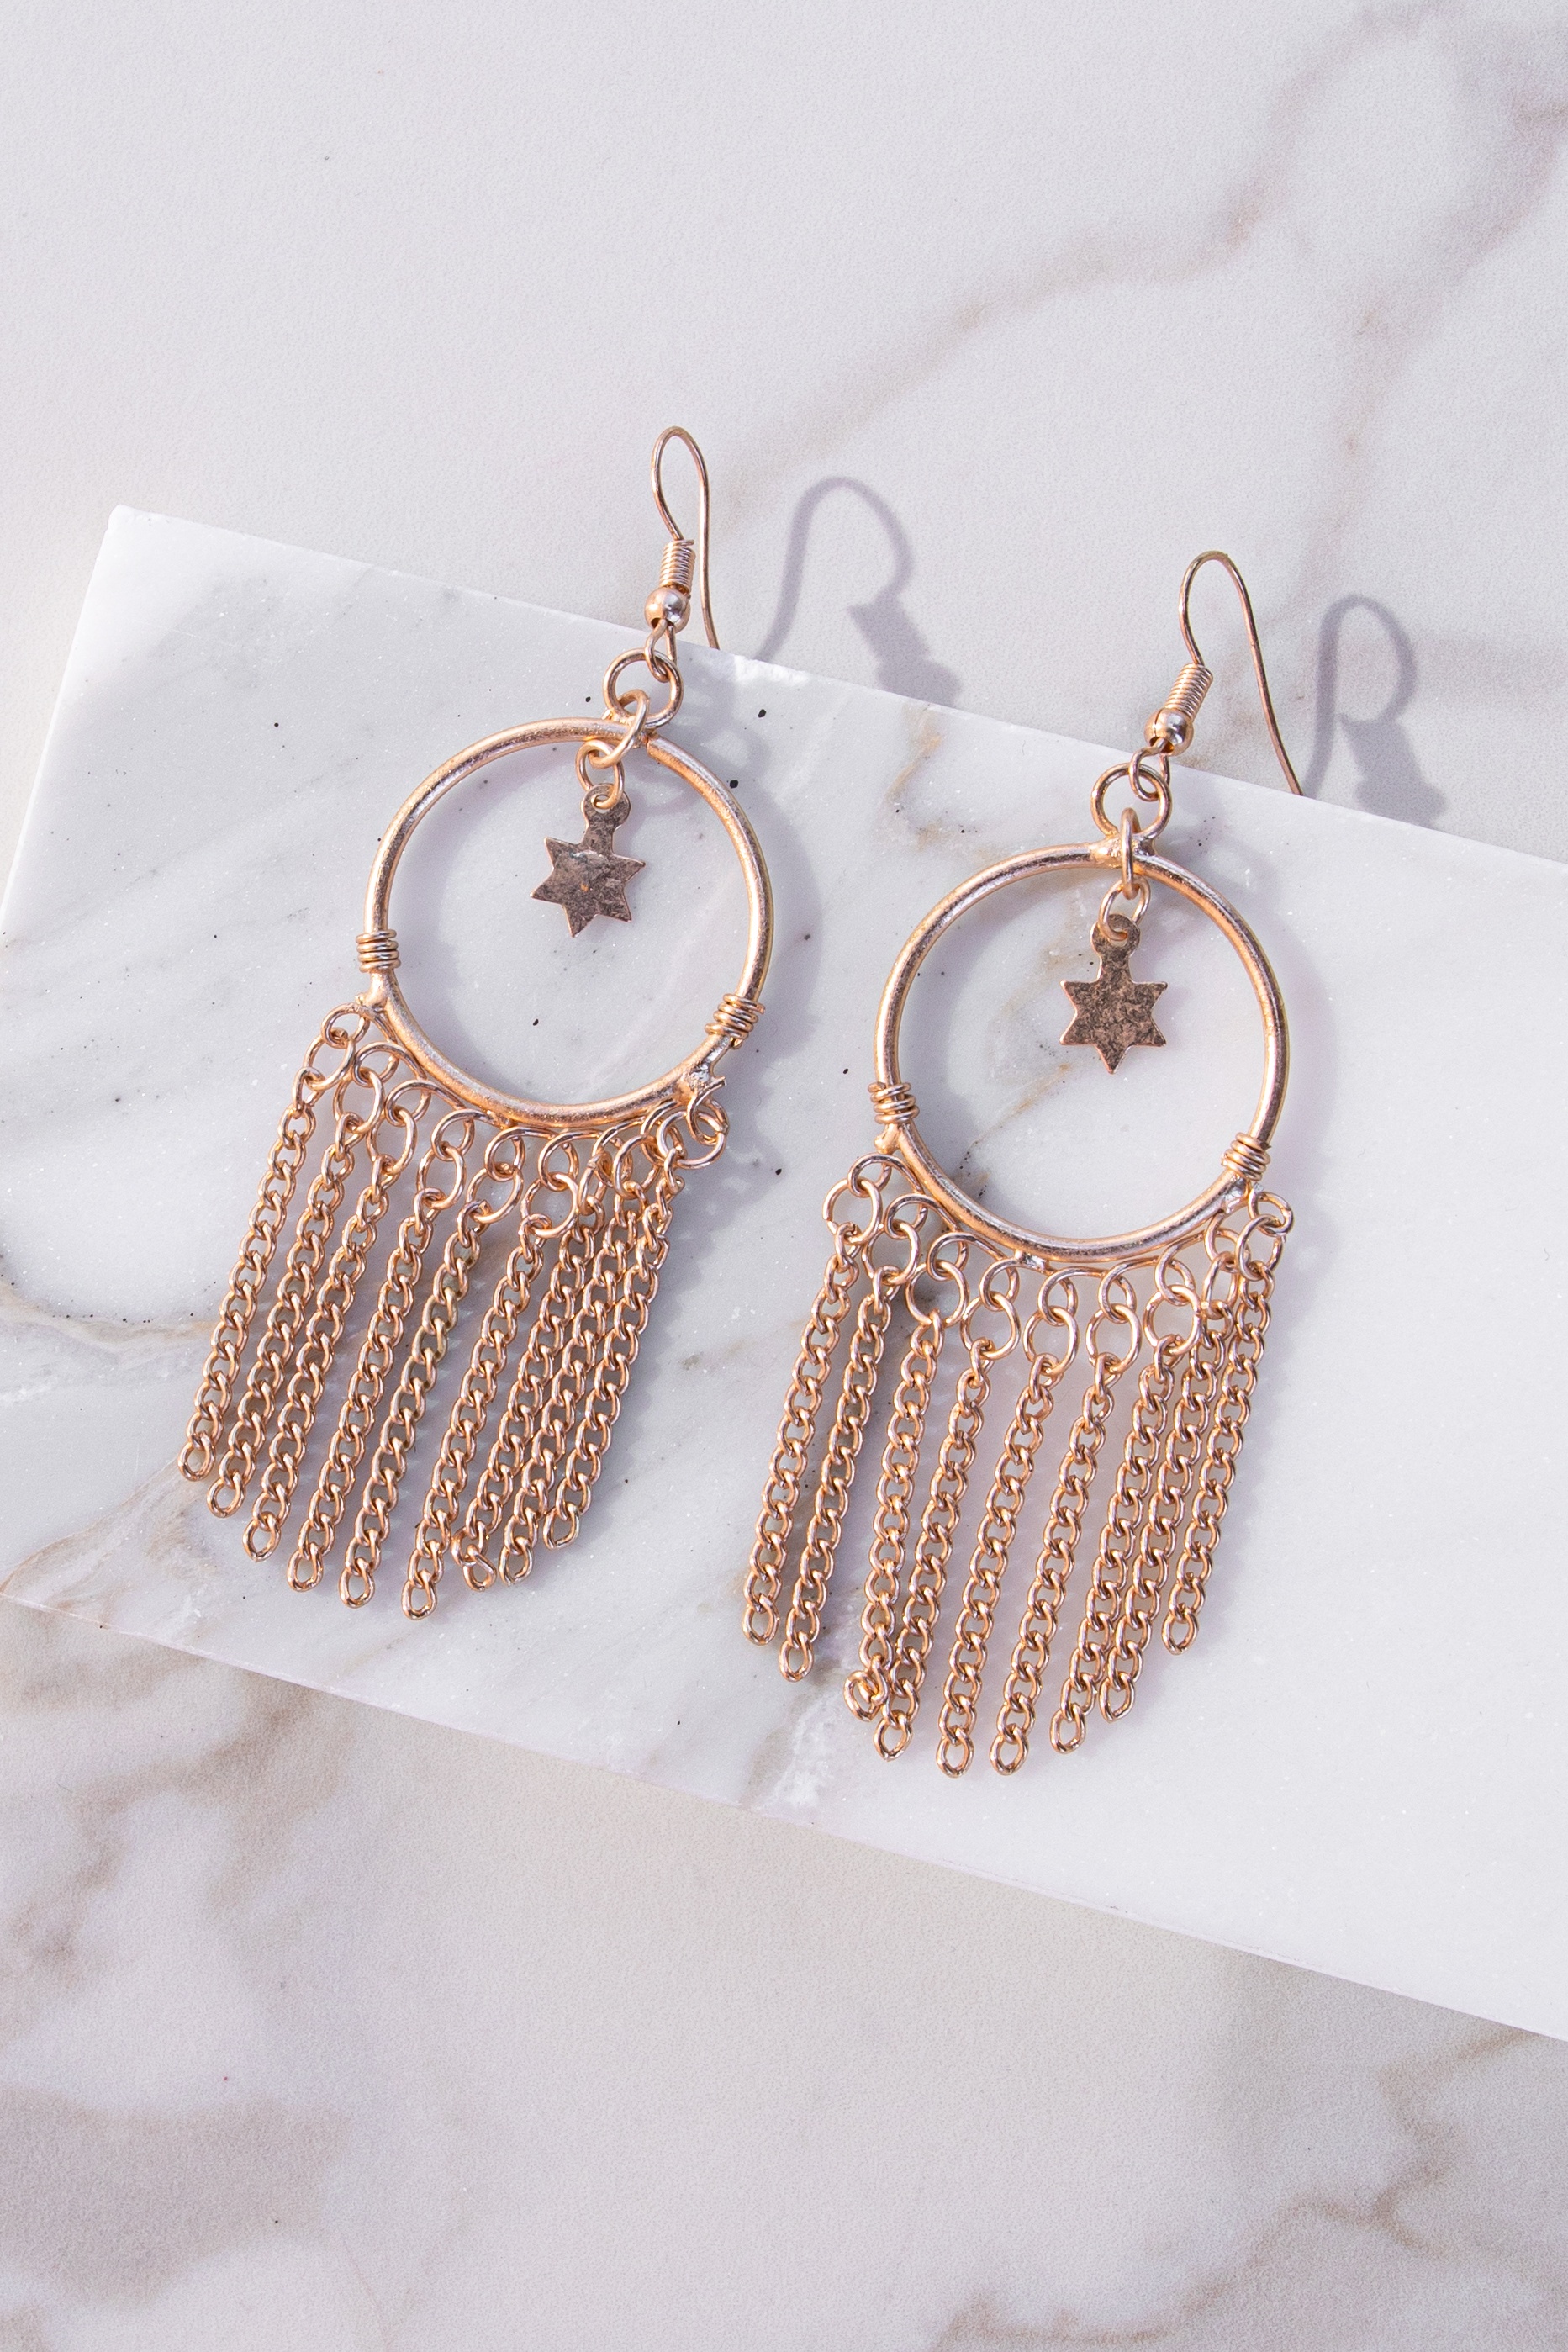 Gold Hoop Dangle Earrings with Star and Chain Details